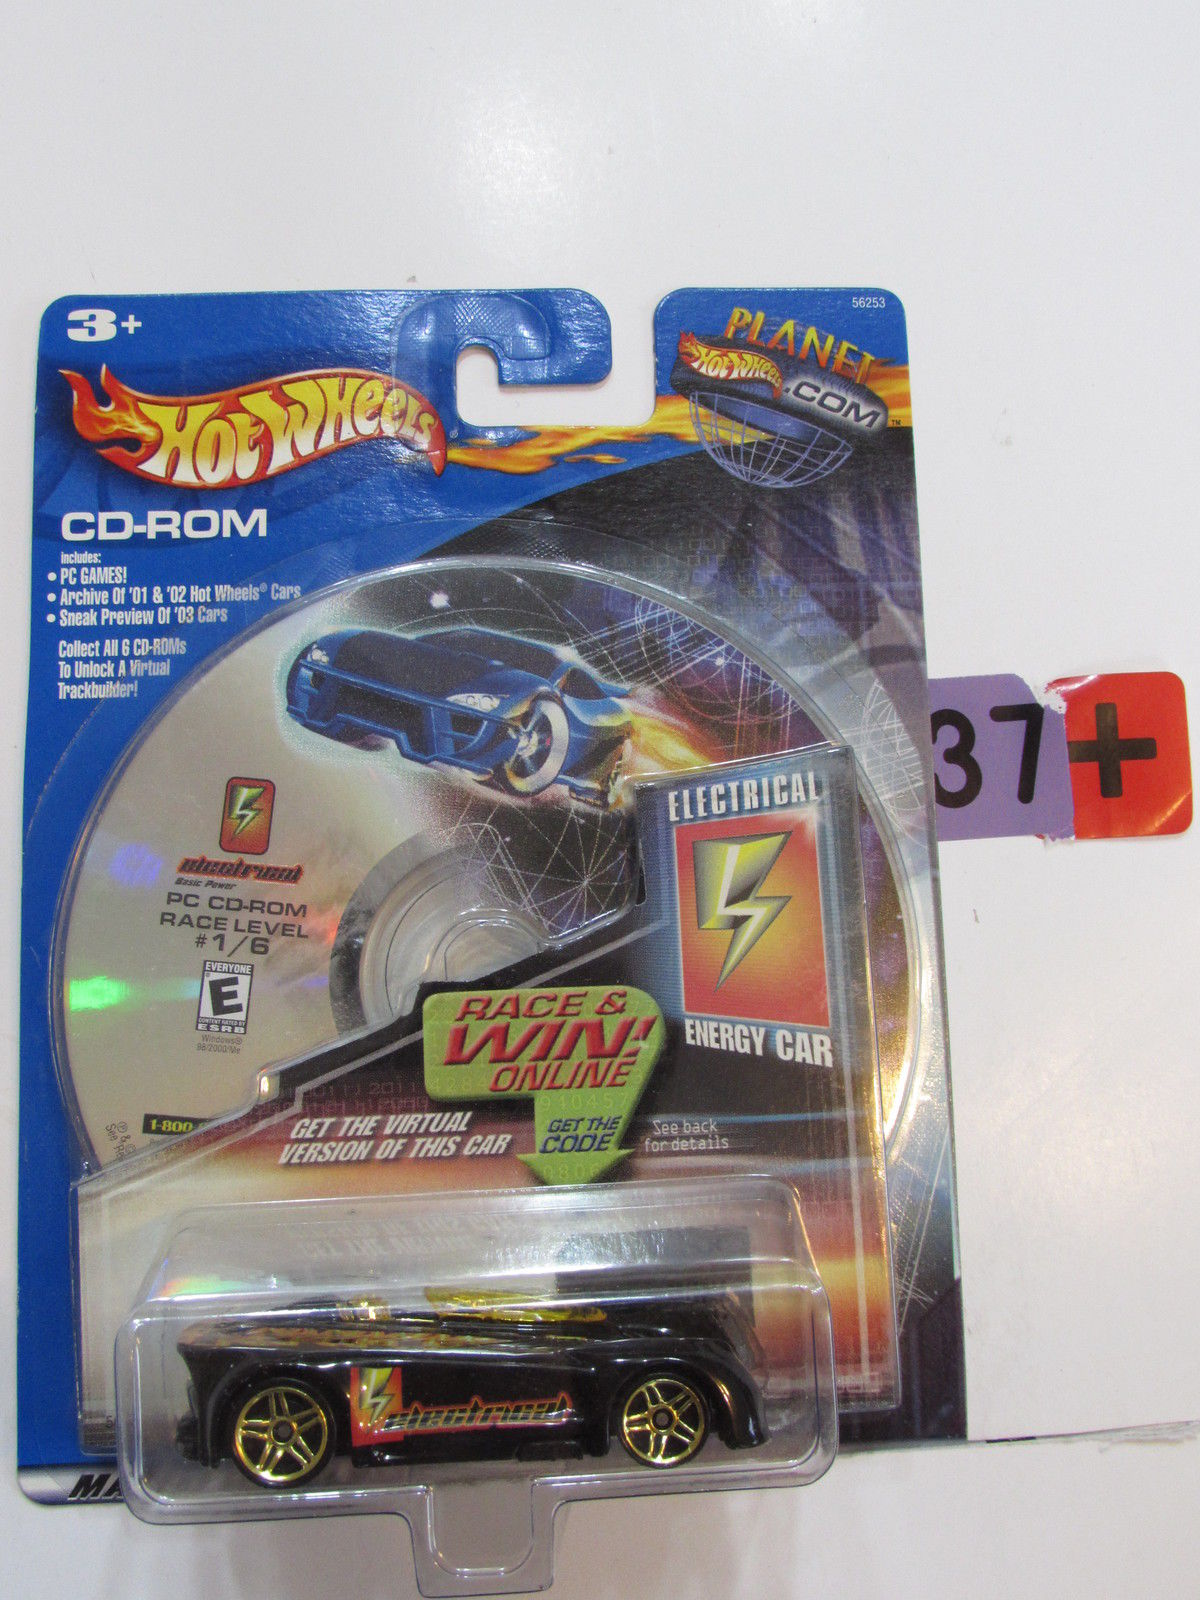 HOT WHEELS 2001 CD - ROM ELECTRICAL ENERGY CAR - MONOPOSTO